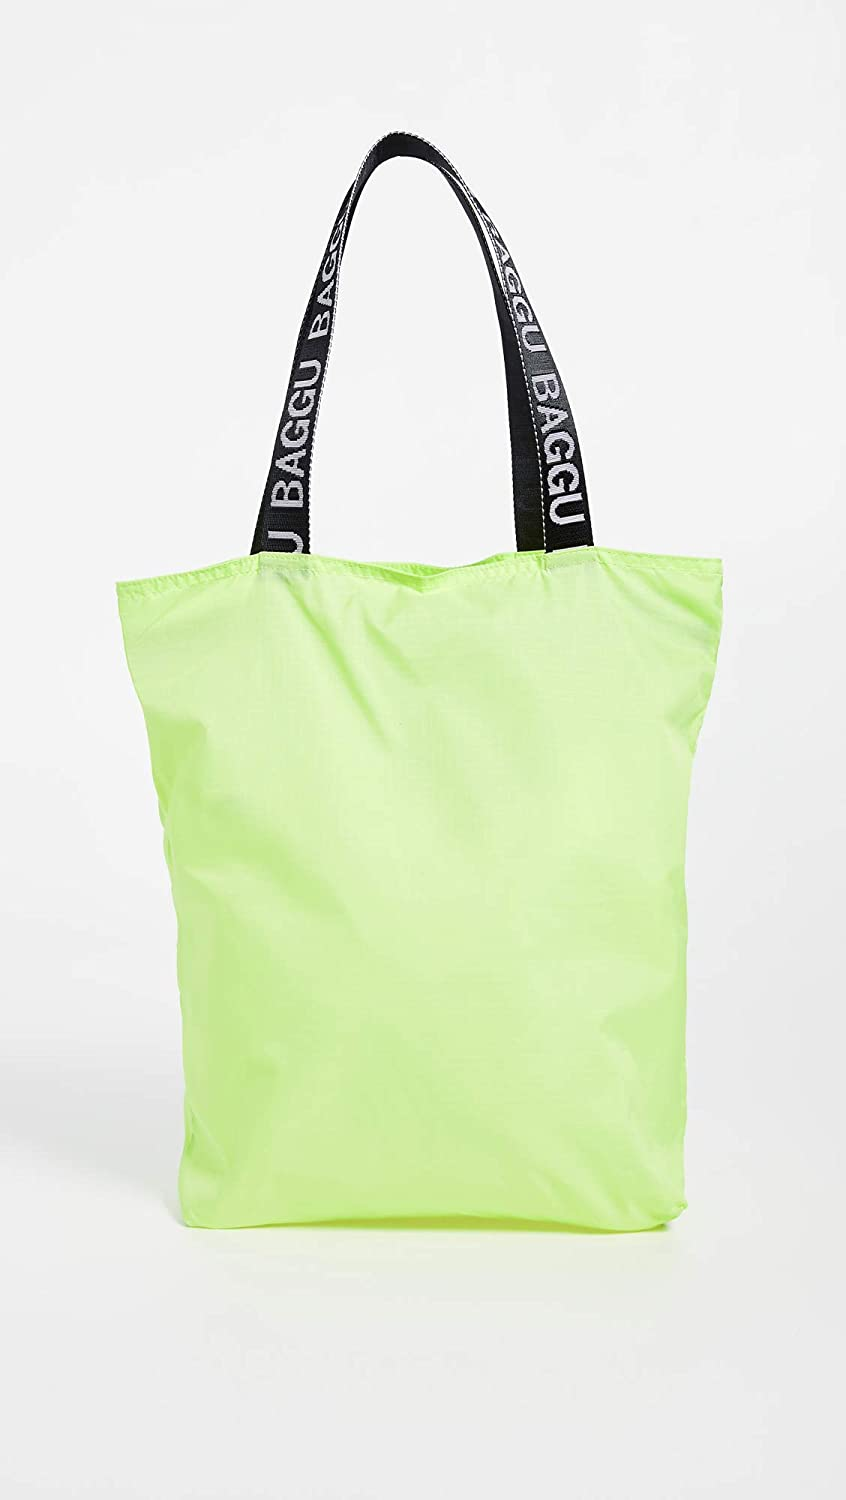 c5f85ddbc961 Amazon.com: BAGGU Women's Ripstop Tote, Lime, Green, One Size: Shoes